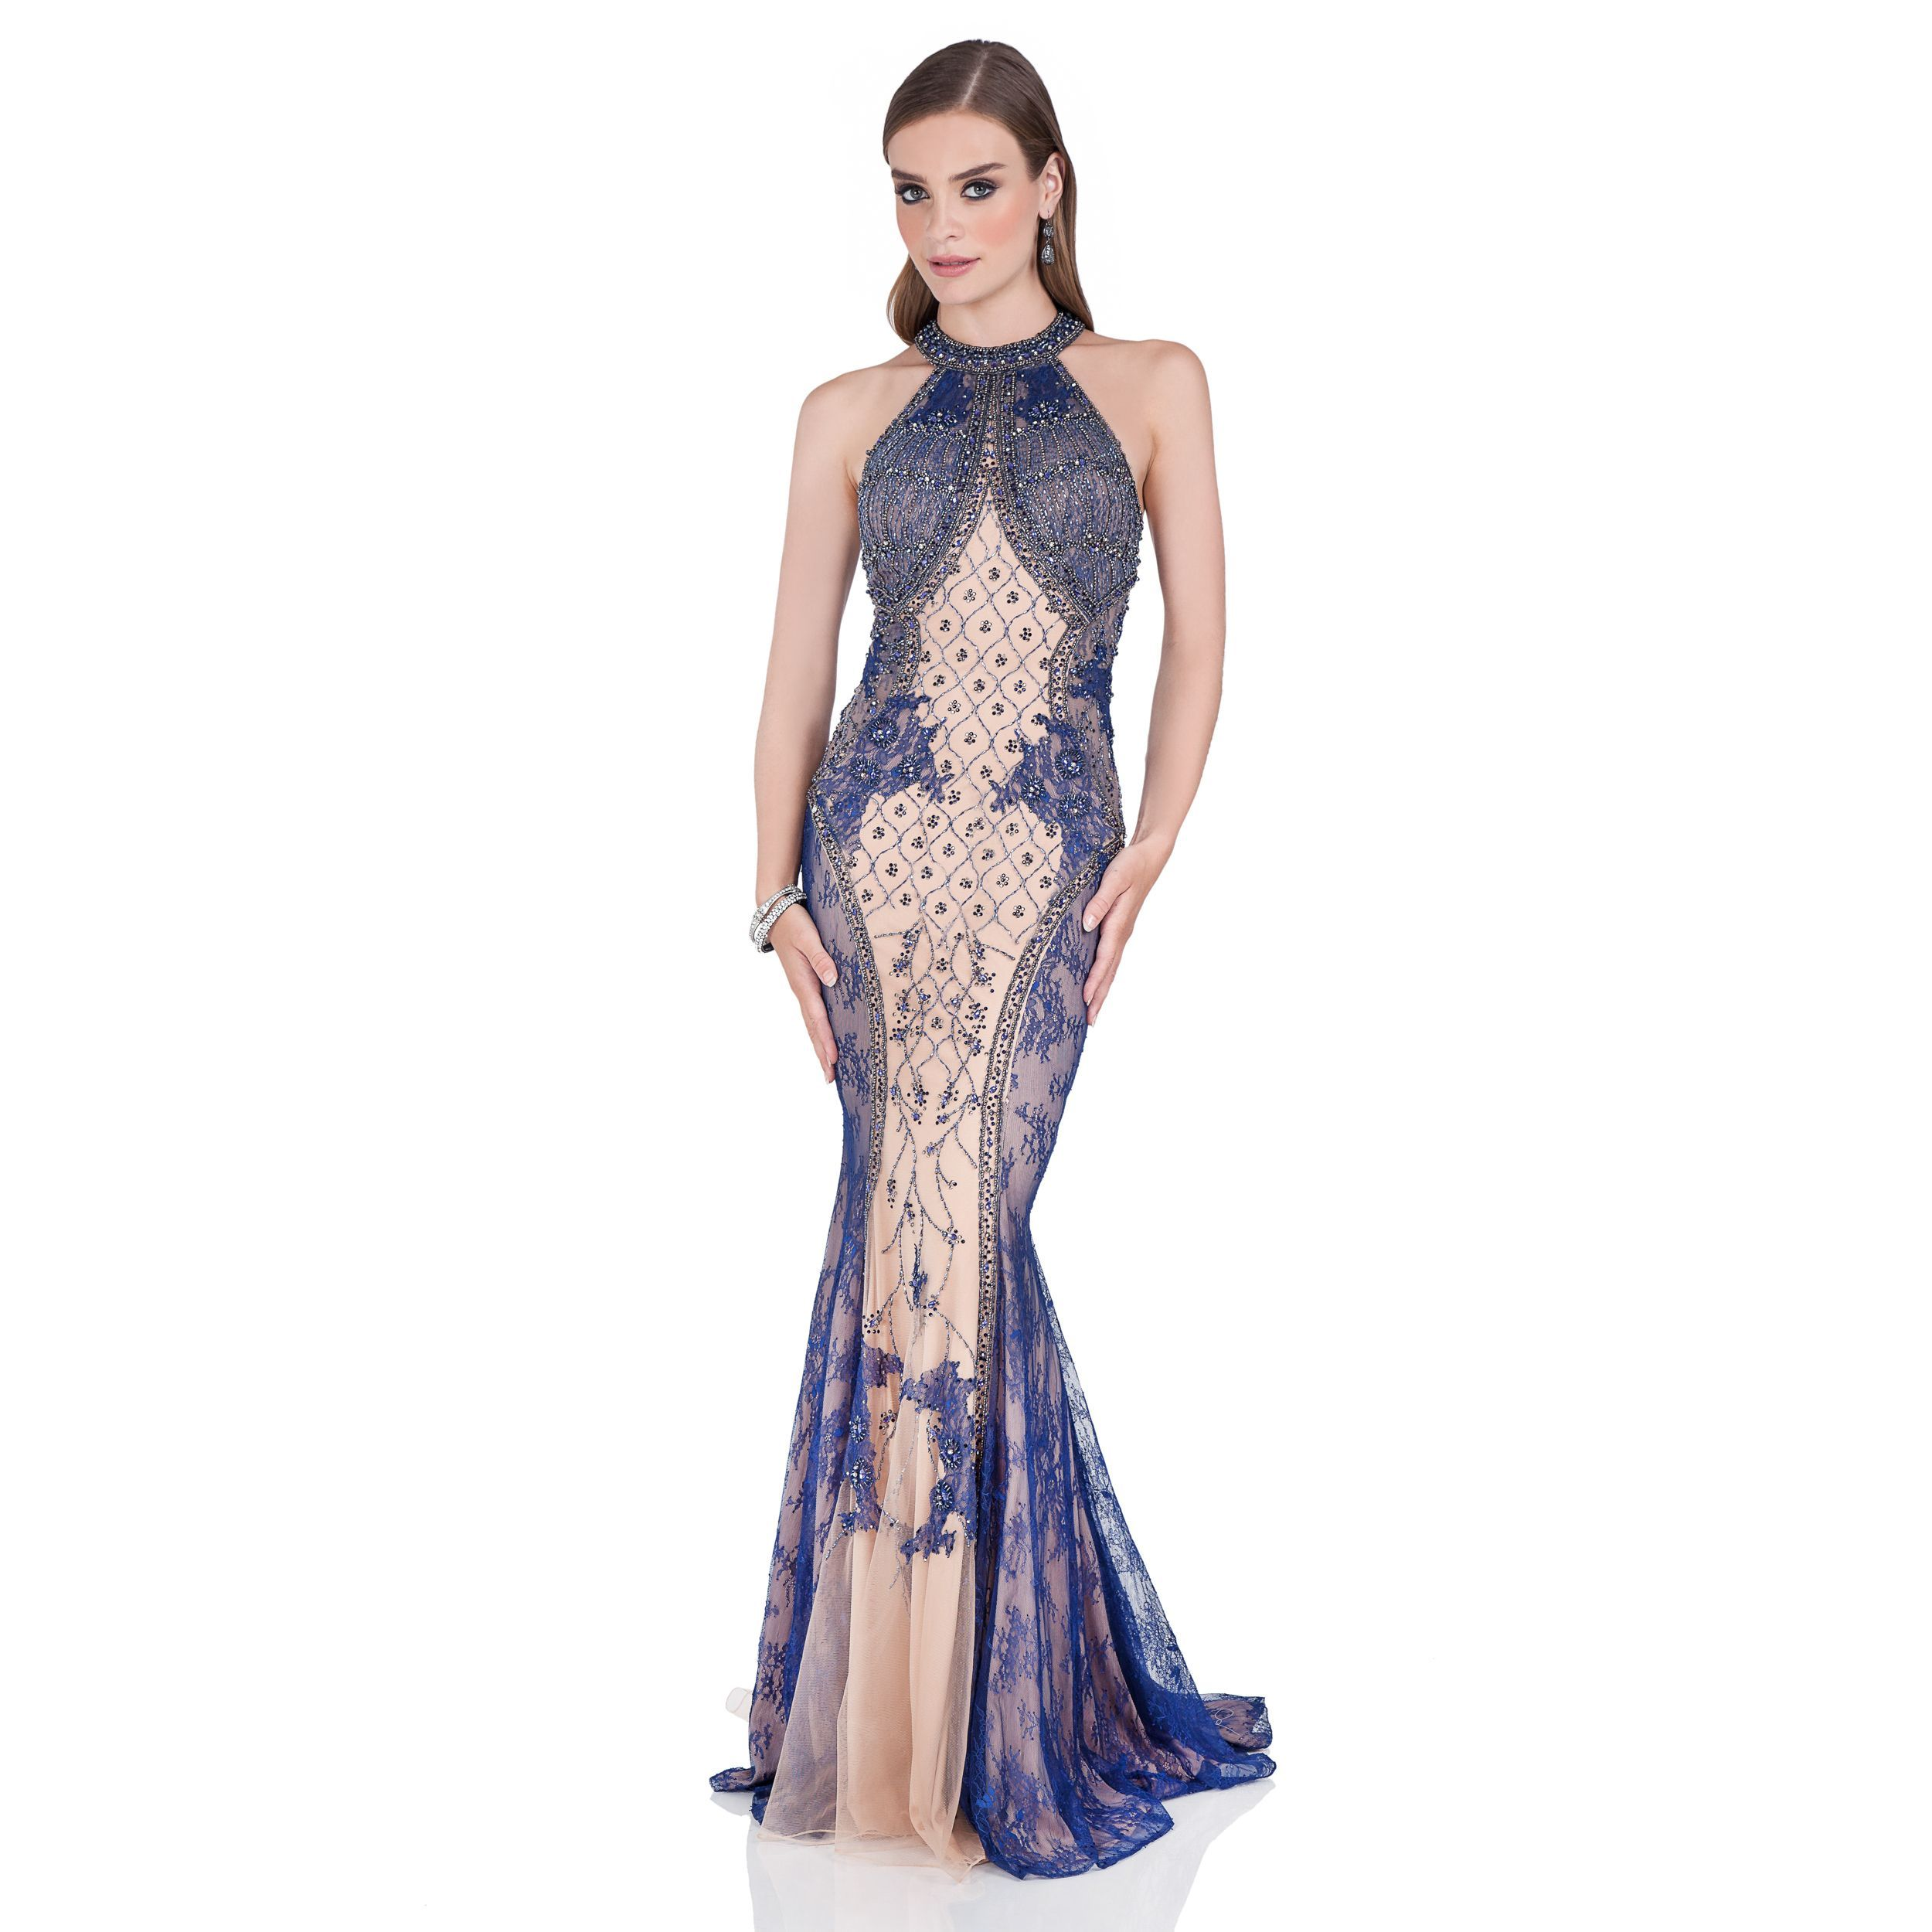 Terani couture womenus intricately beaded halter evening gown navy